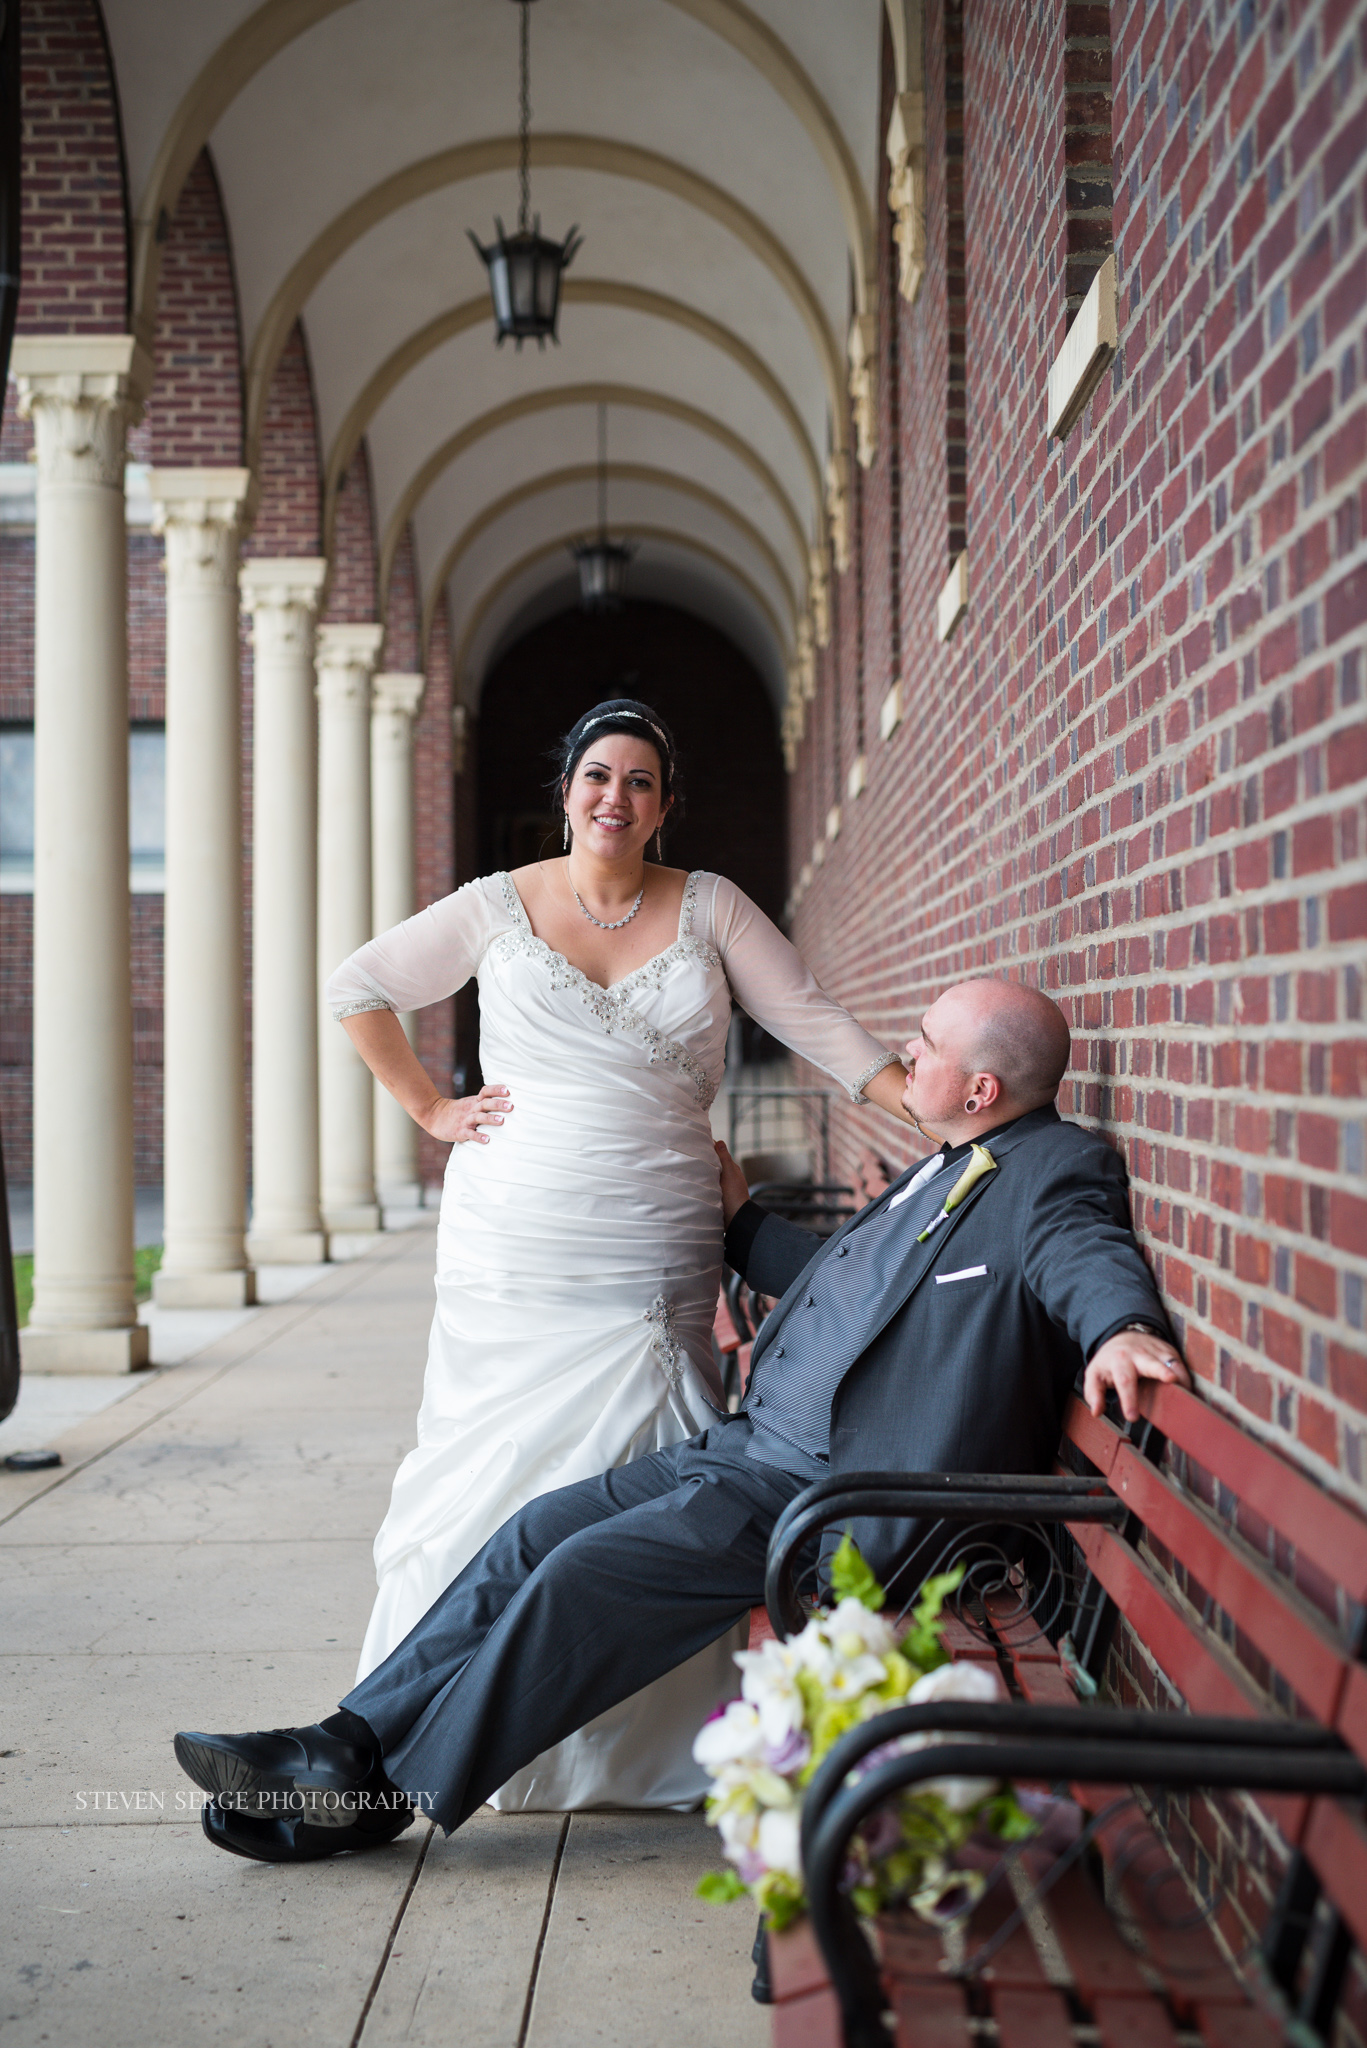 Scranton-wedding-photographer-fiorellis-steven-serge-29.jpg